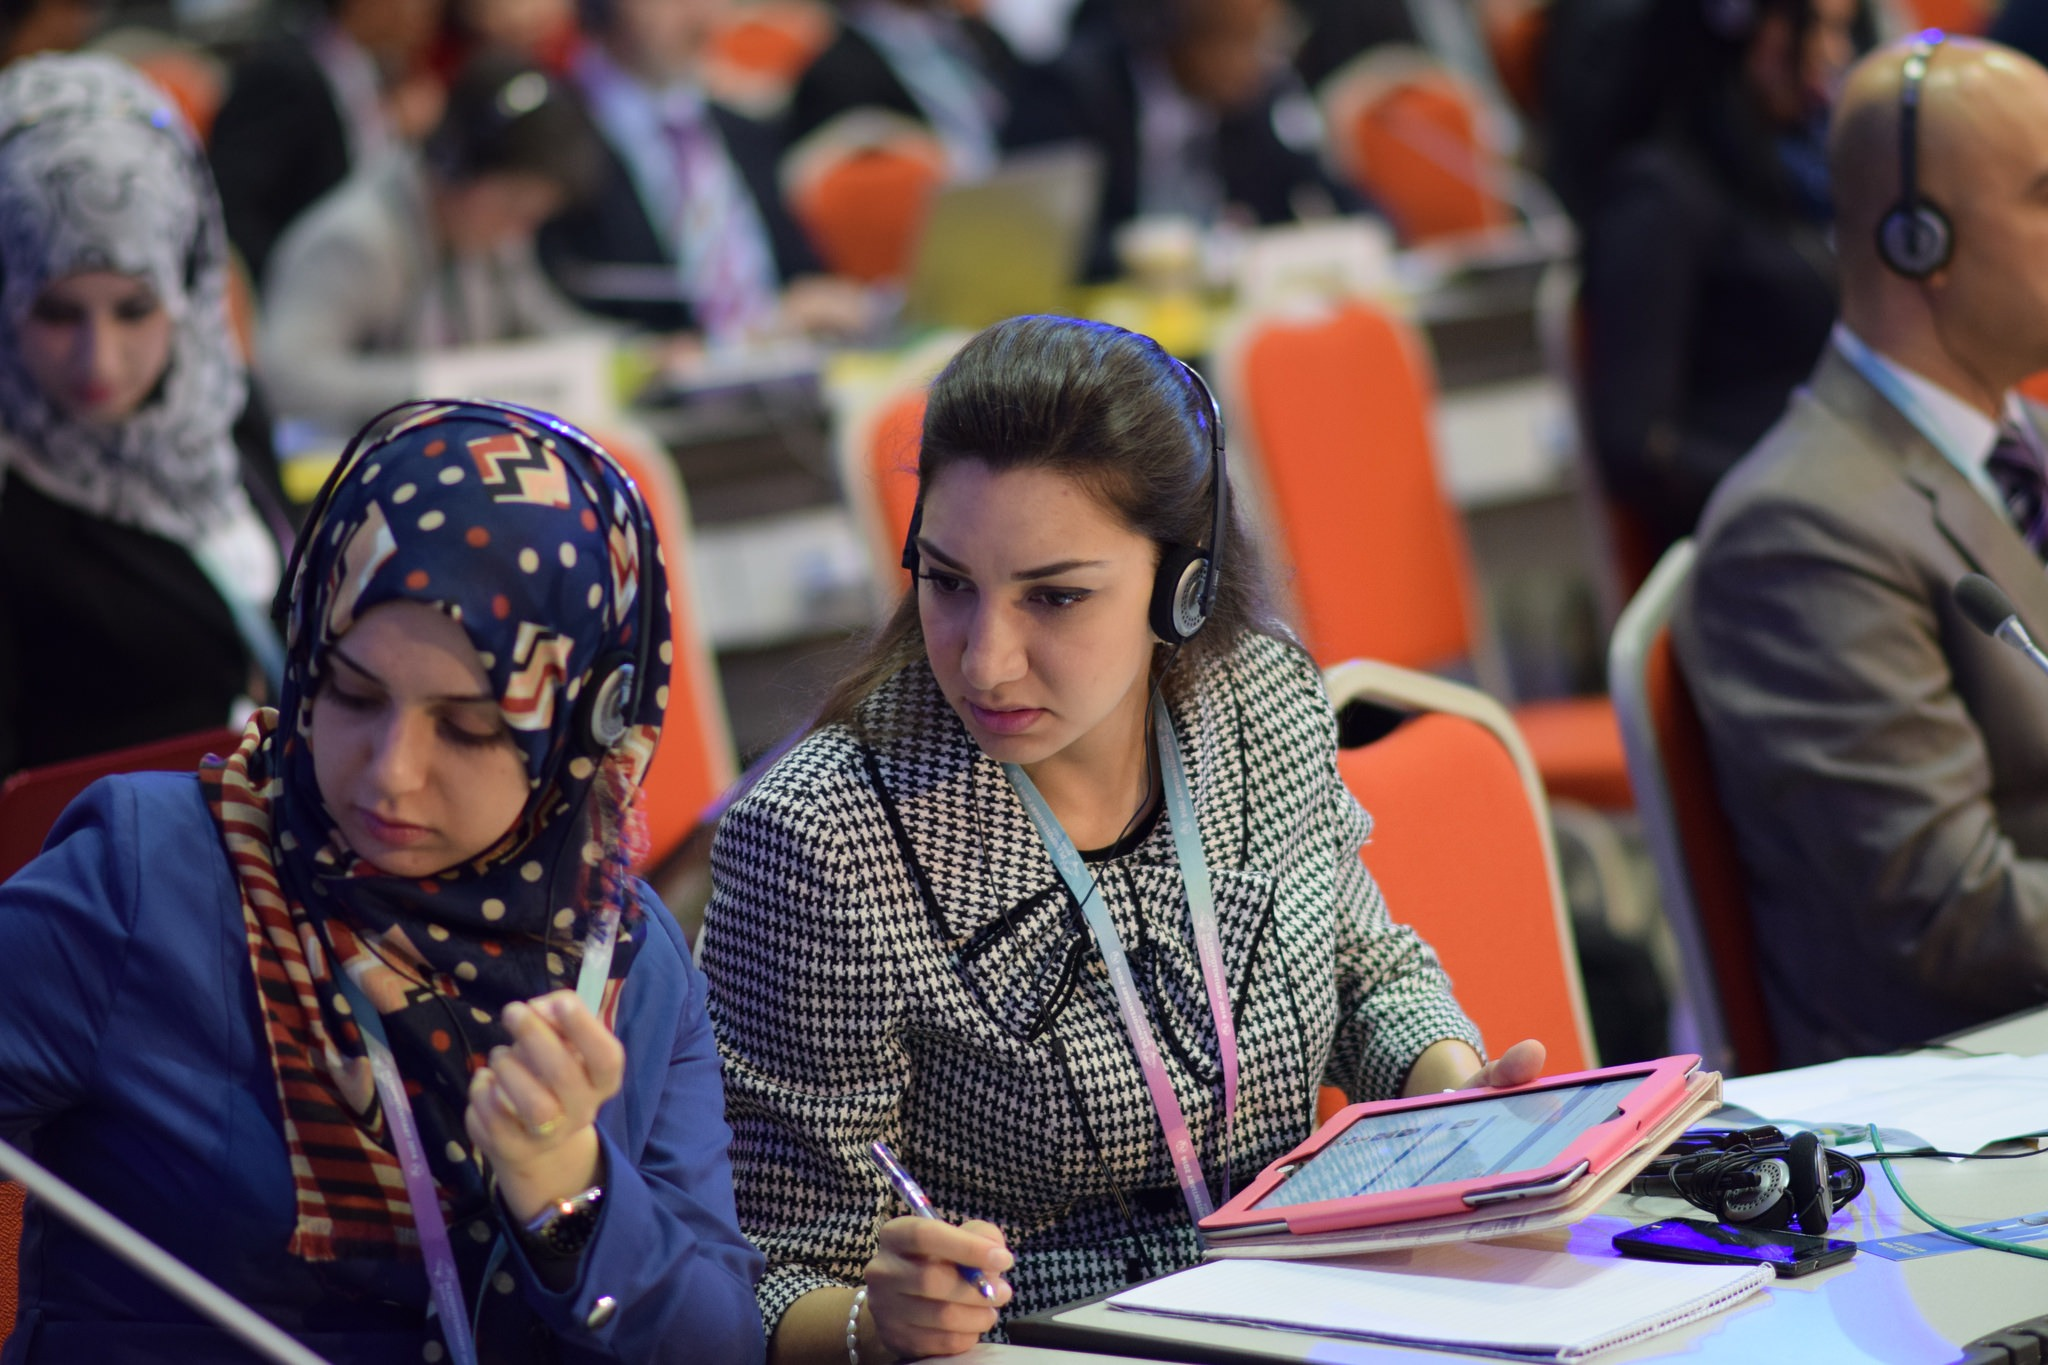 Observations from ISOC Chapter Fellows on the ITU Plenipotentiary Conference